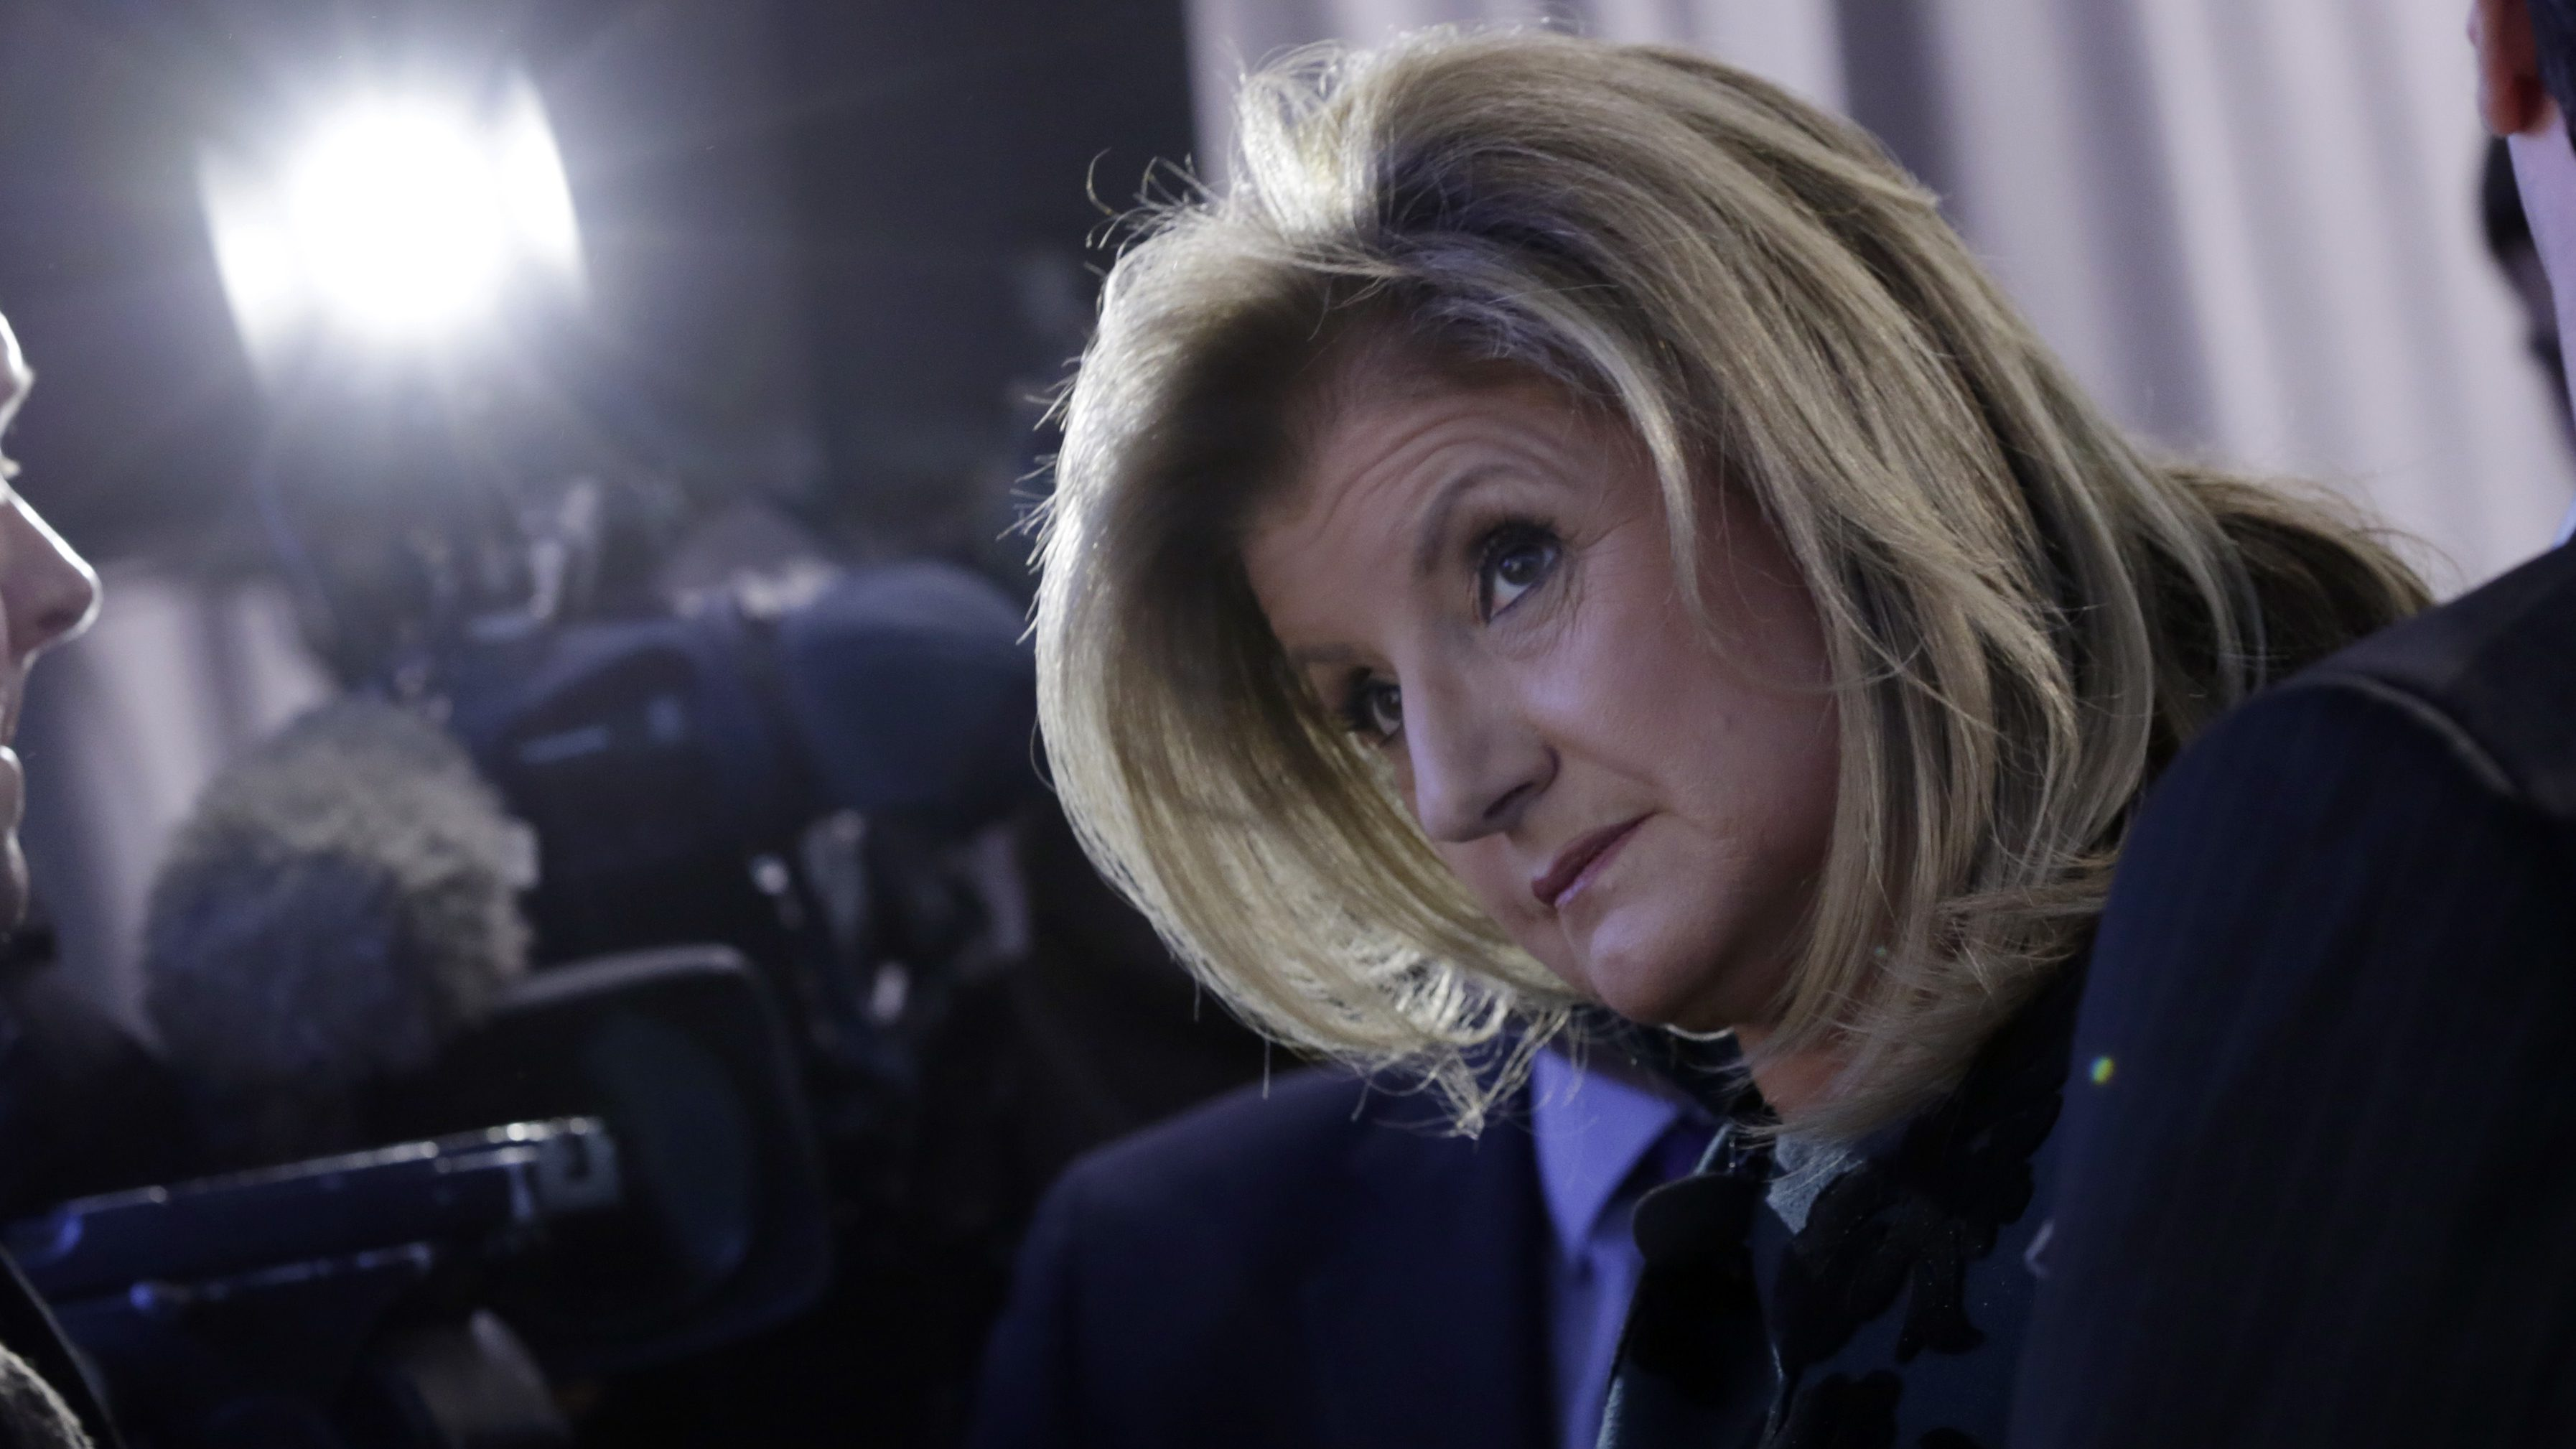 Arianna Huffington, the co-founder and editor-in-chief of The Huffington Post, attends a London business expo, in New York,  Wednesday, Feb. 11, 2015. (AP Photo/Richard Drew)